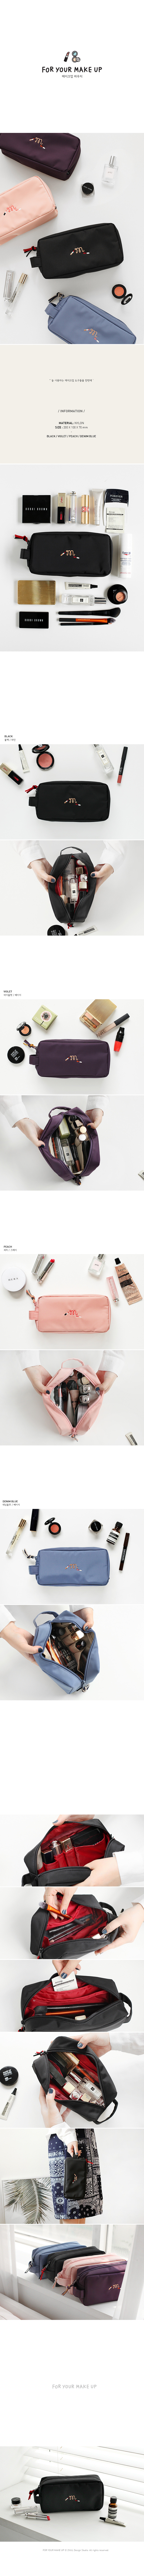 FOR YOUR MAKE UP - 메이크업파우치 19,800원 - 이널 여행/레포츠, 여행수납, 트래블팩단품, 멀티파우치 바보사랑 FOR YOUR MAKE UP - 메이크업파우치 19,800원 - 이널 여행/레포츠, 여행수납, 트래블팩단품, 멀티파우치 바보사랑